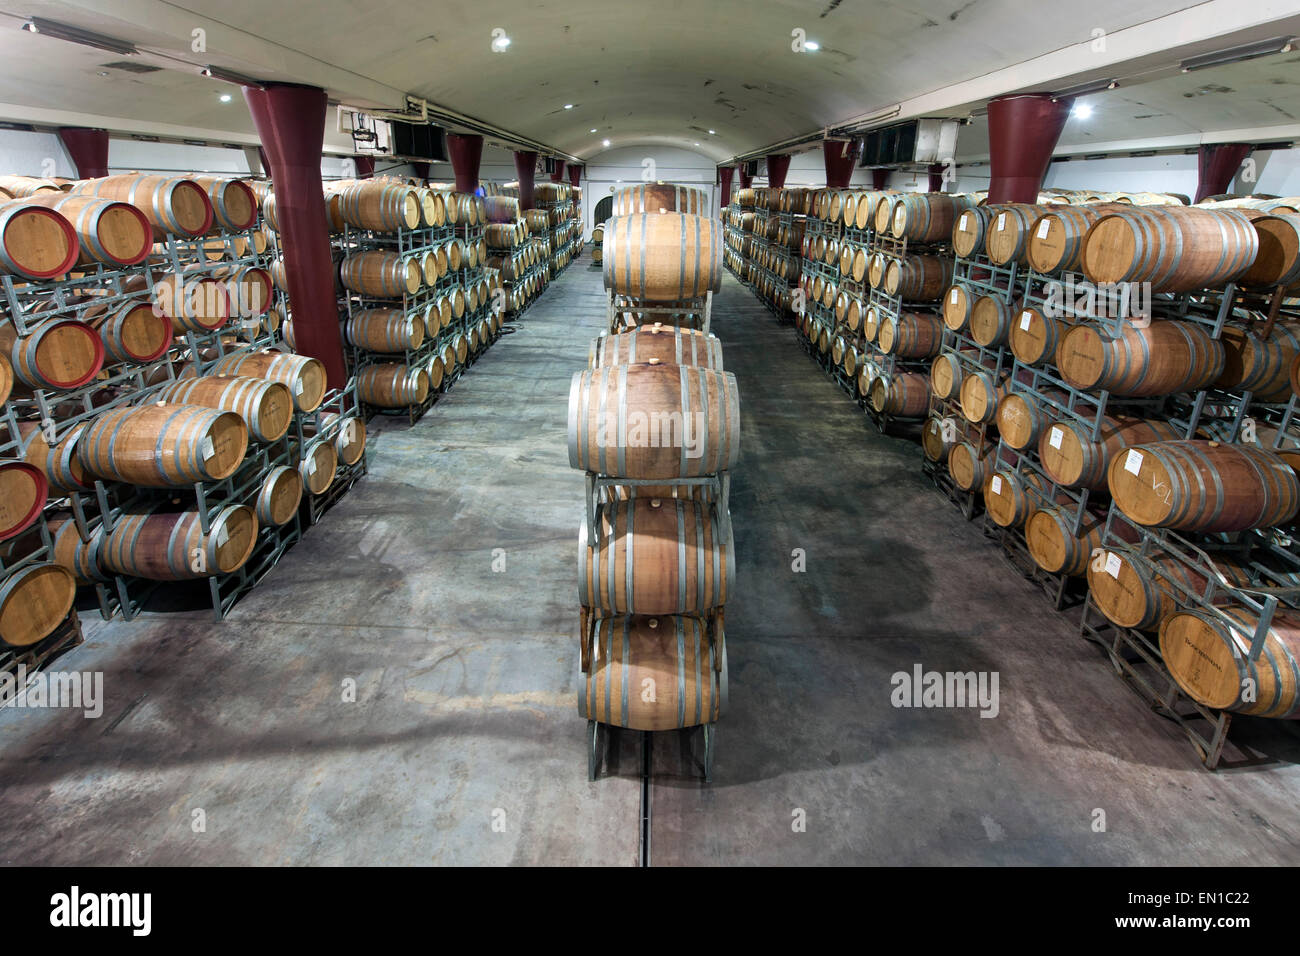 Wine barrels of the Boschendal winery in Stellenbosch, South Africa. - Stock Image